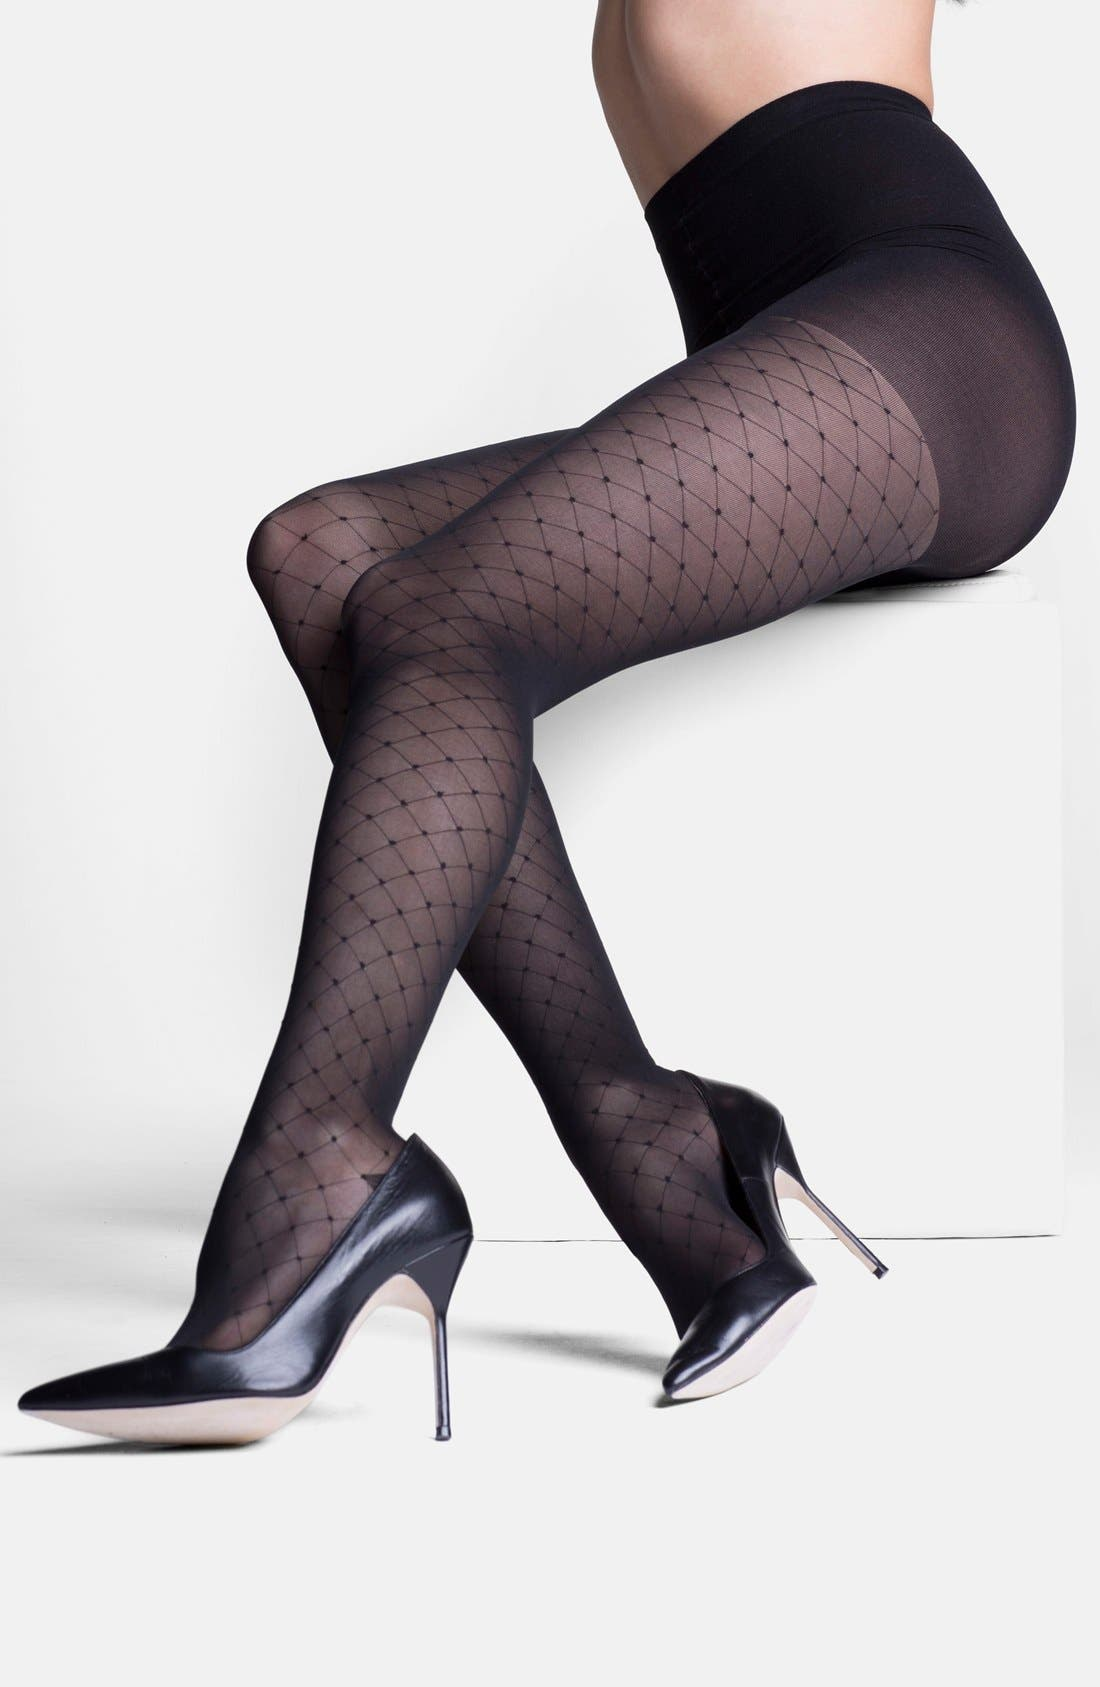 'Starlet' Diamond Pattern Compression Pantyhose,                             Alternate thumbnail 6, color,                             BLACK